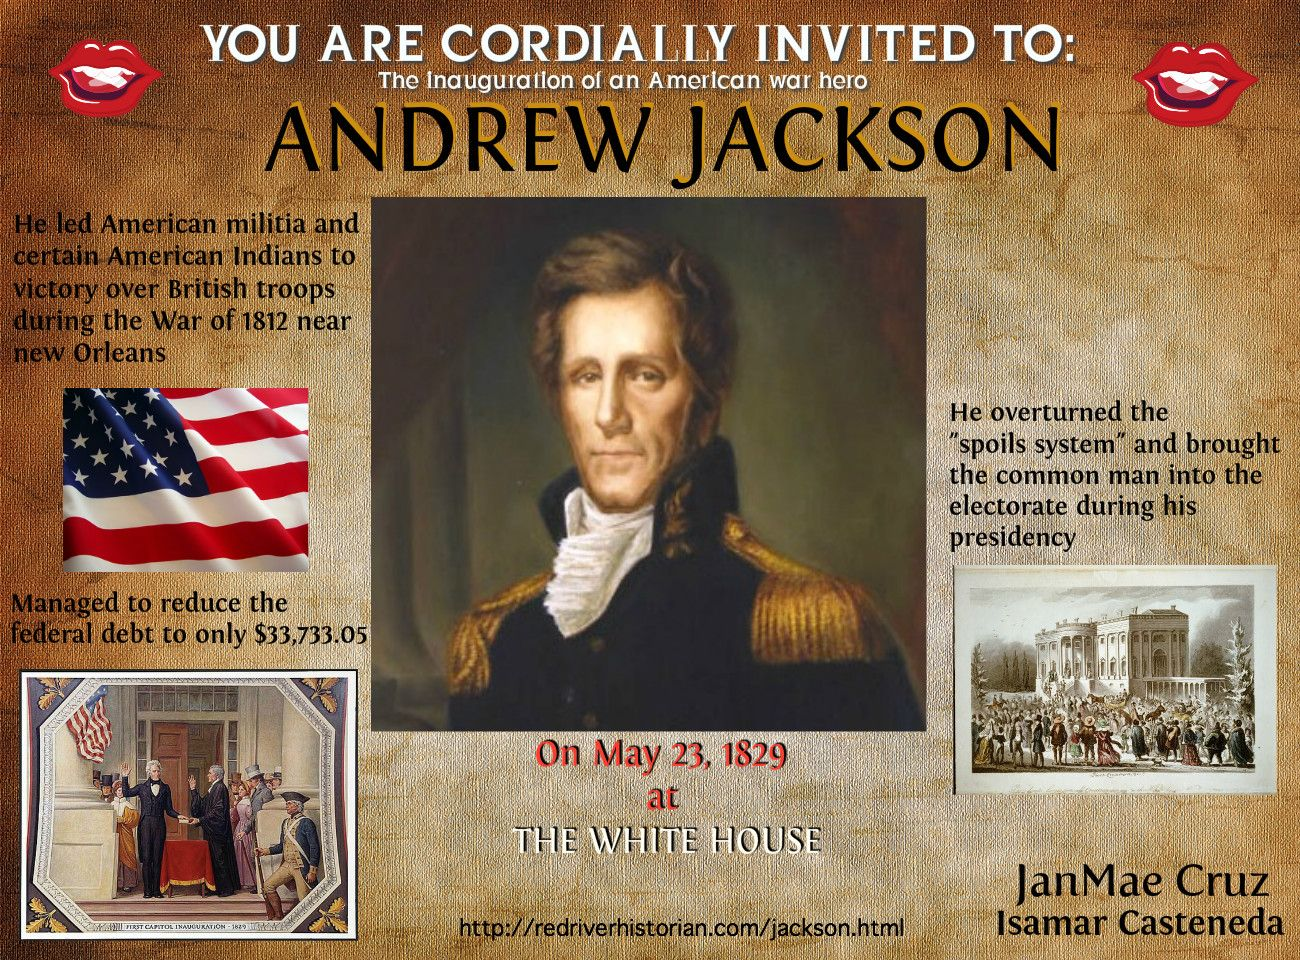 andrew jackson an ideal president for Facts, information and articles about andrew jackson, the 7th us president andrew jackson facts born march 15, 1767 died june 8, 1845 spouse rachel jackson.